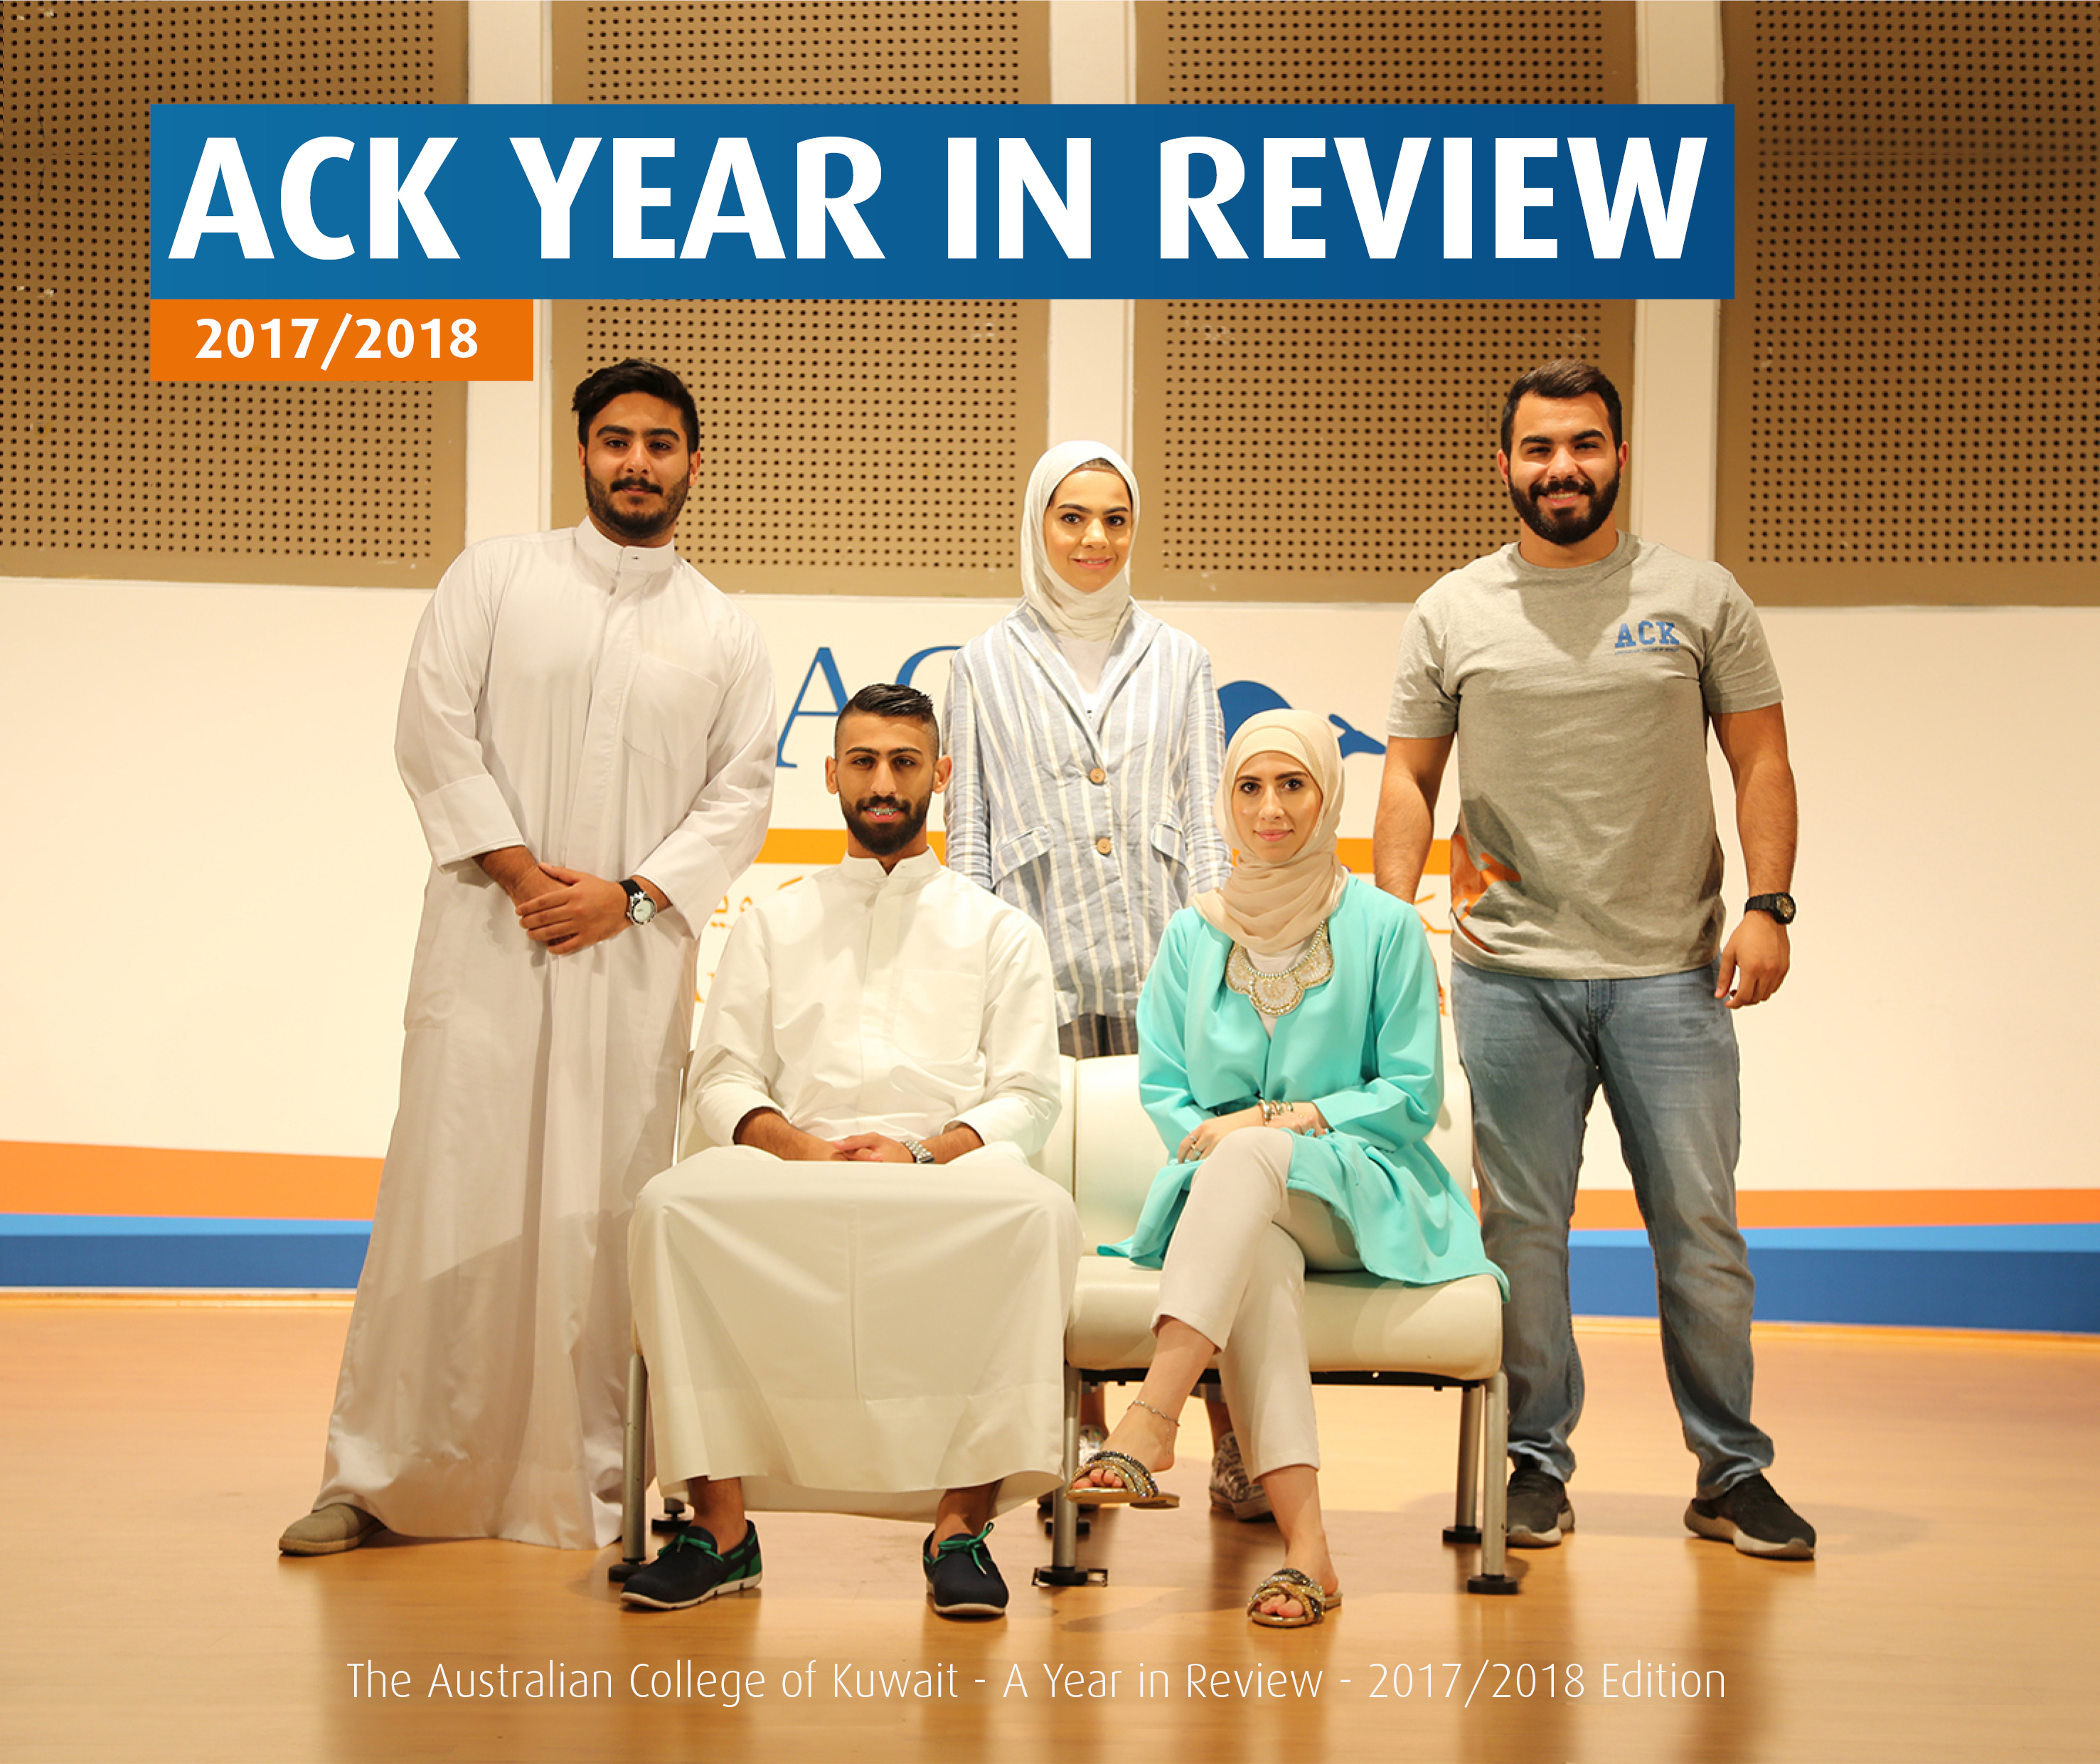 Second Annual ACK Year in Review (2017/2018)